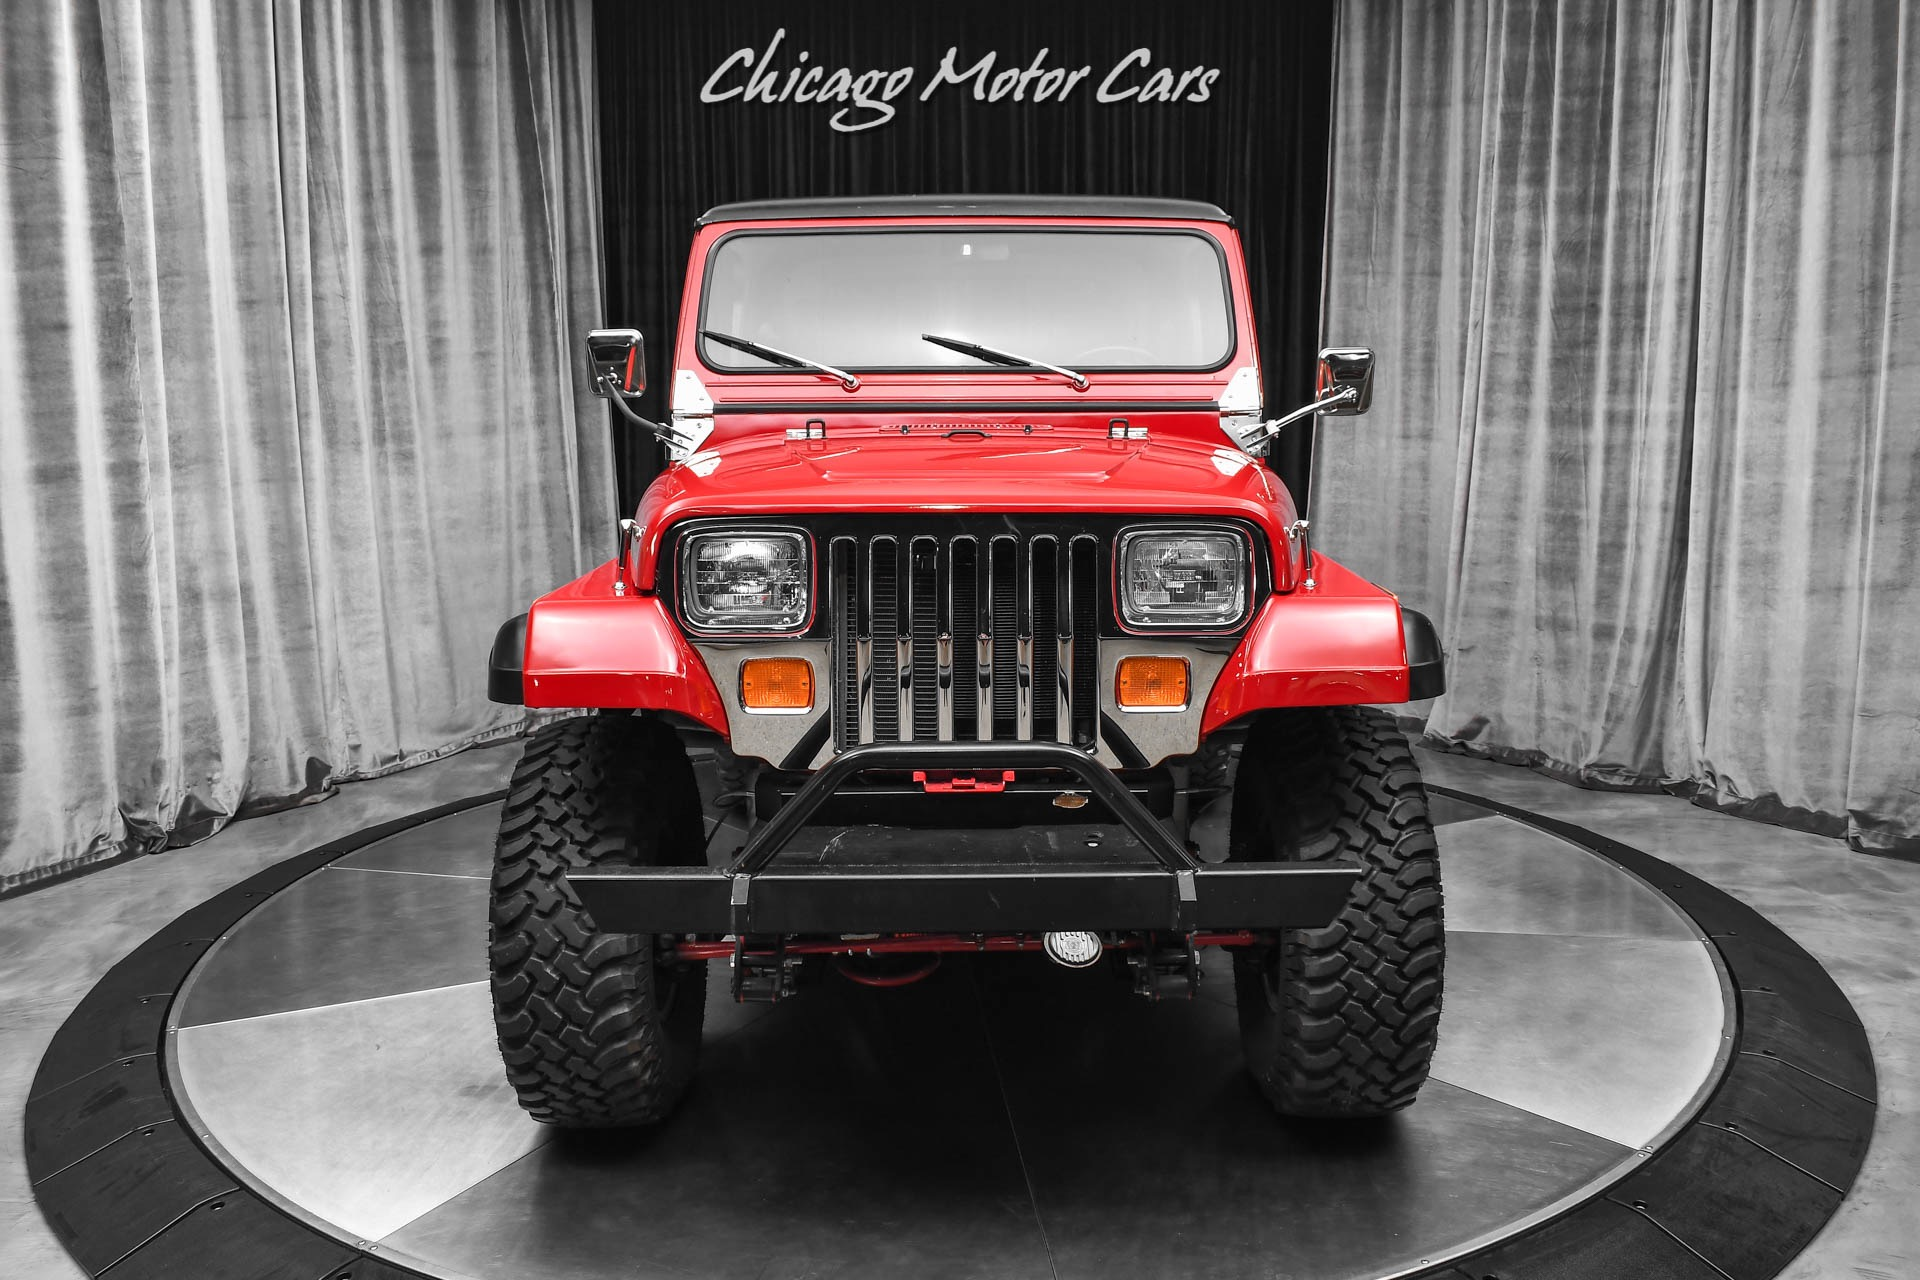 Used-1985-Jeep-CJ-7-SUV-FULL-Restoration-LS1-Swap-Incredible-Build-ONLY-180-Miles